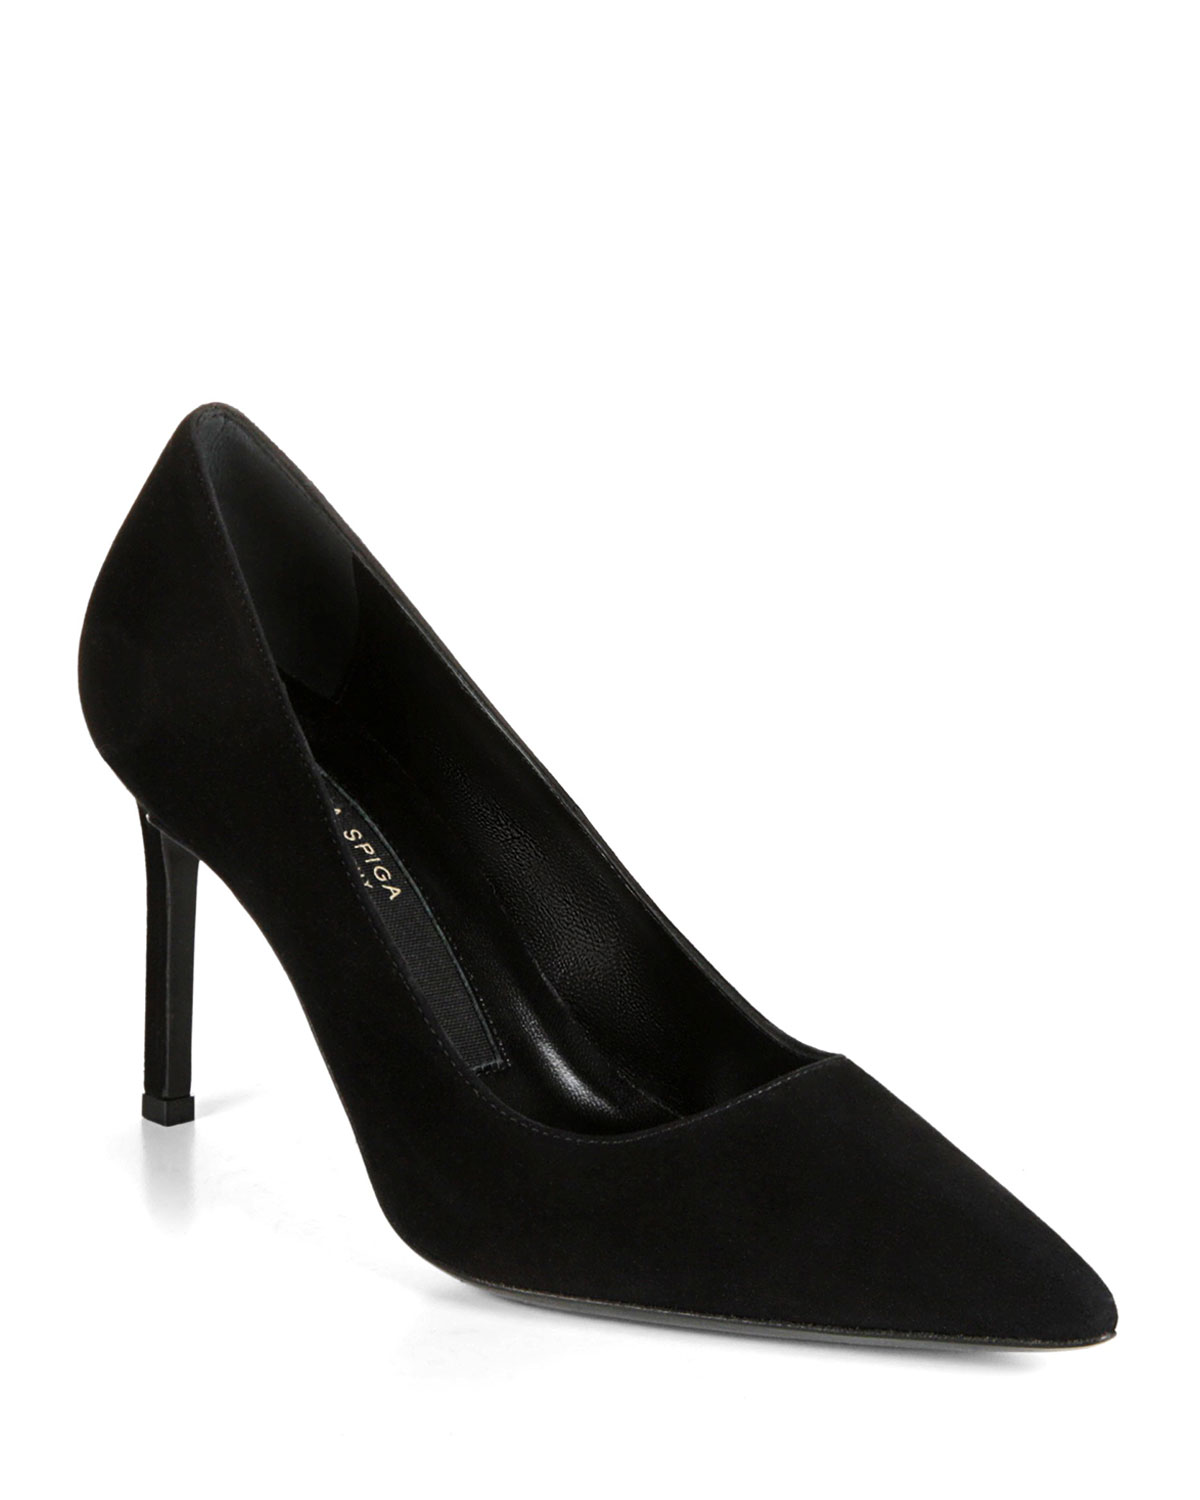 Nikole Suede PointToe Pumps